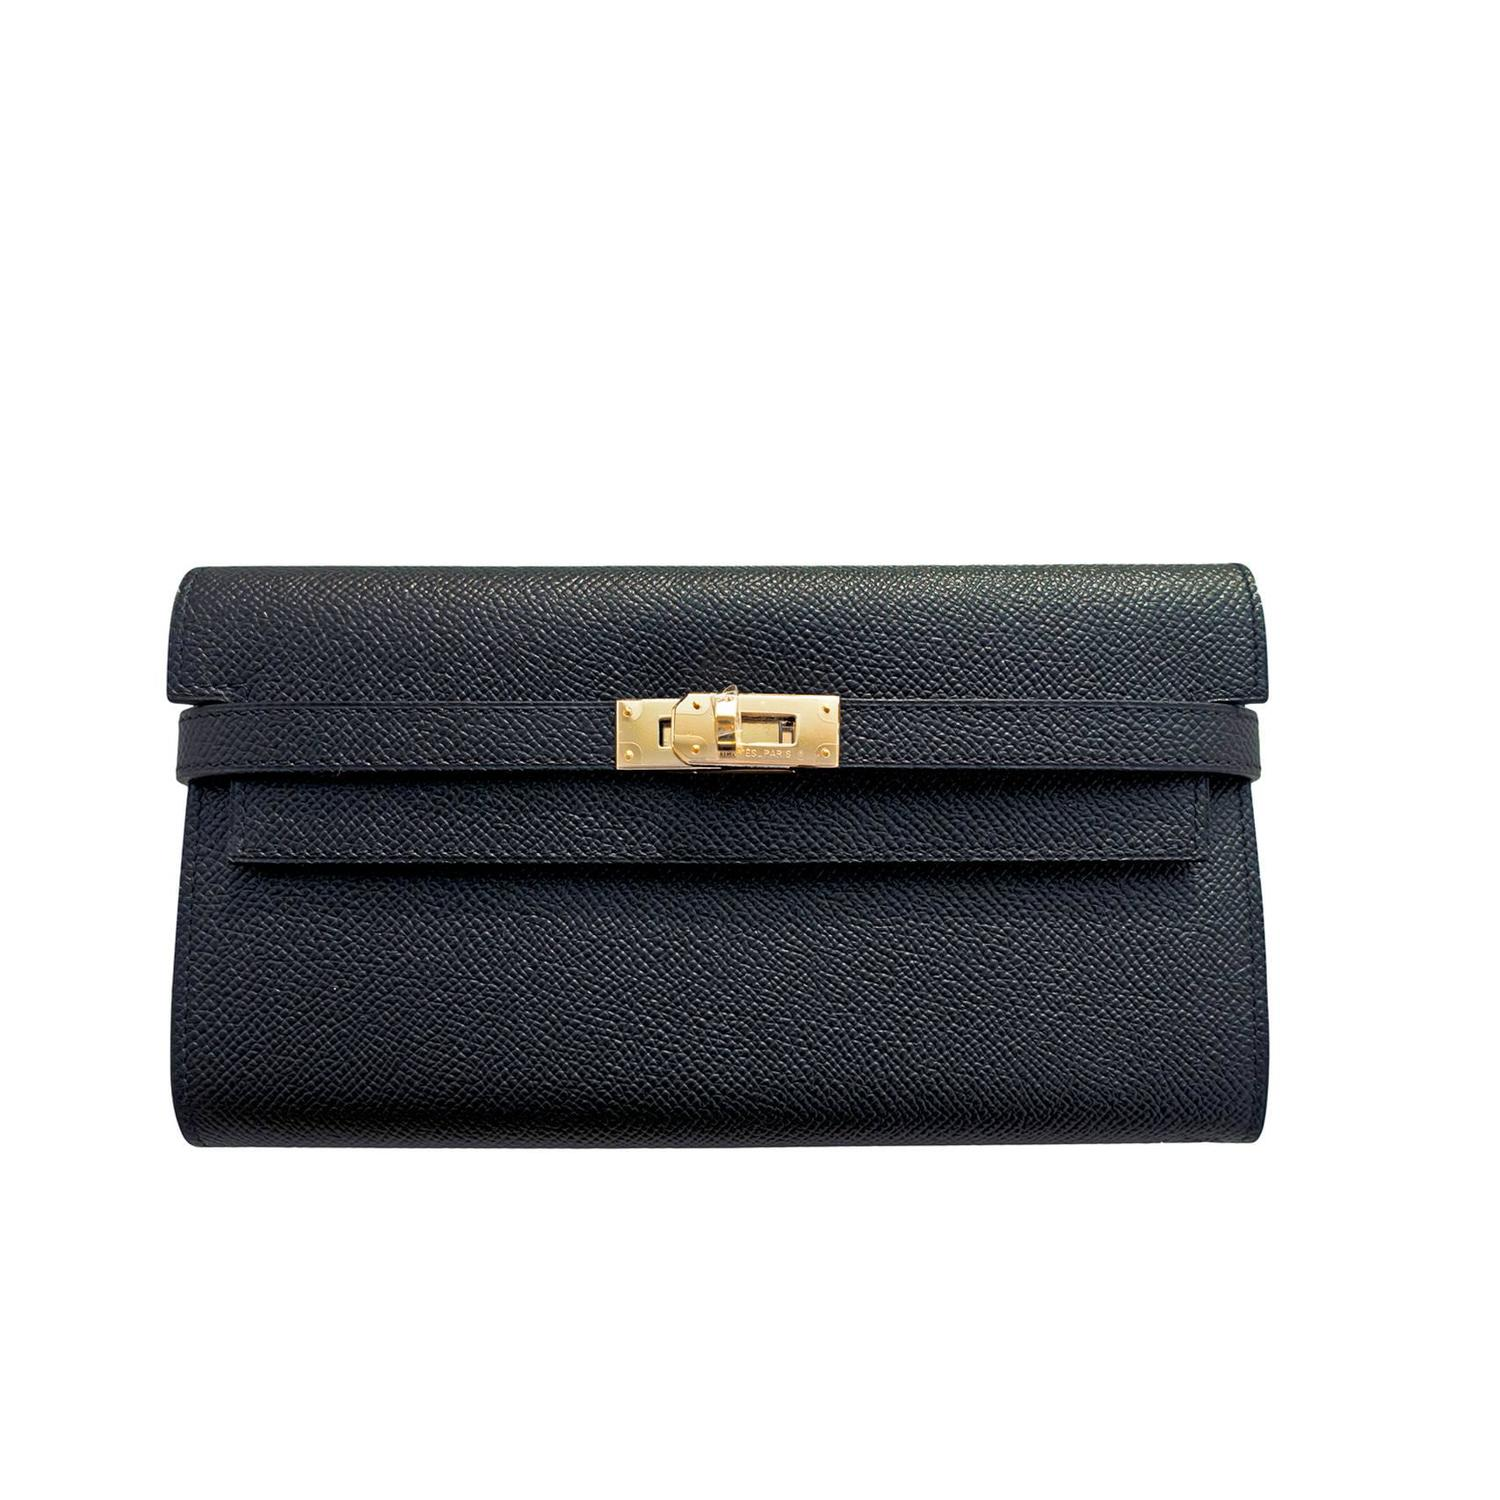 hermes kelly bag price - Chicjoy Wallets and Small Accessories - New York, NY 10003 - 1stdibs